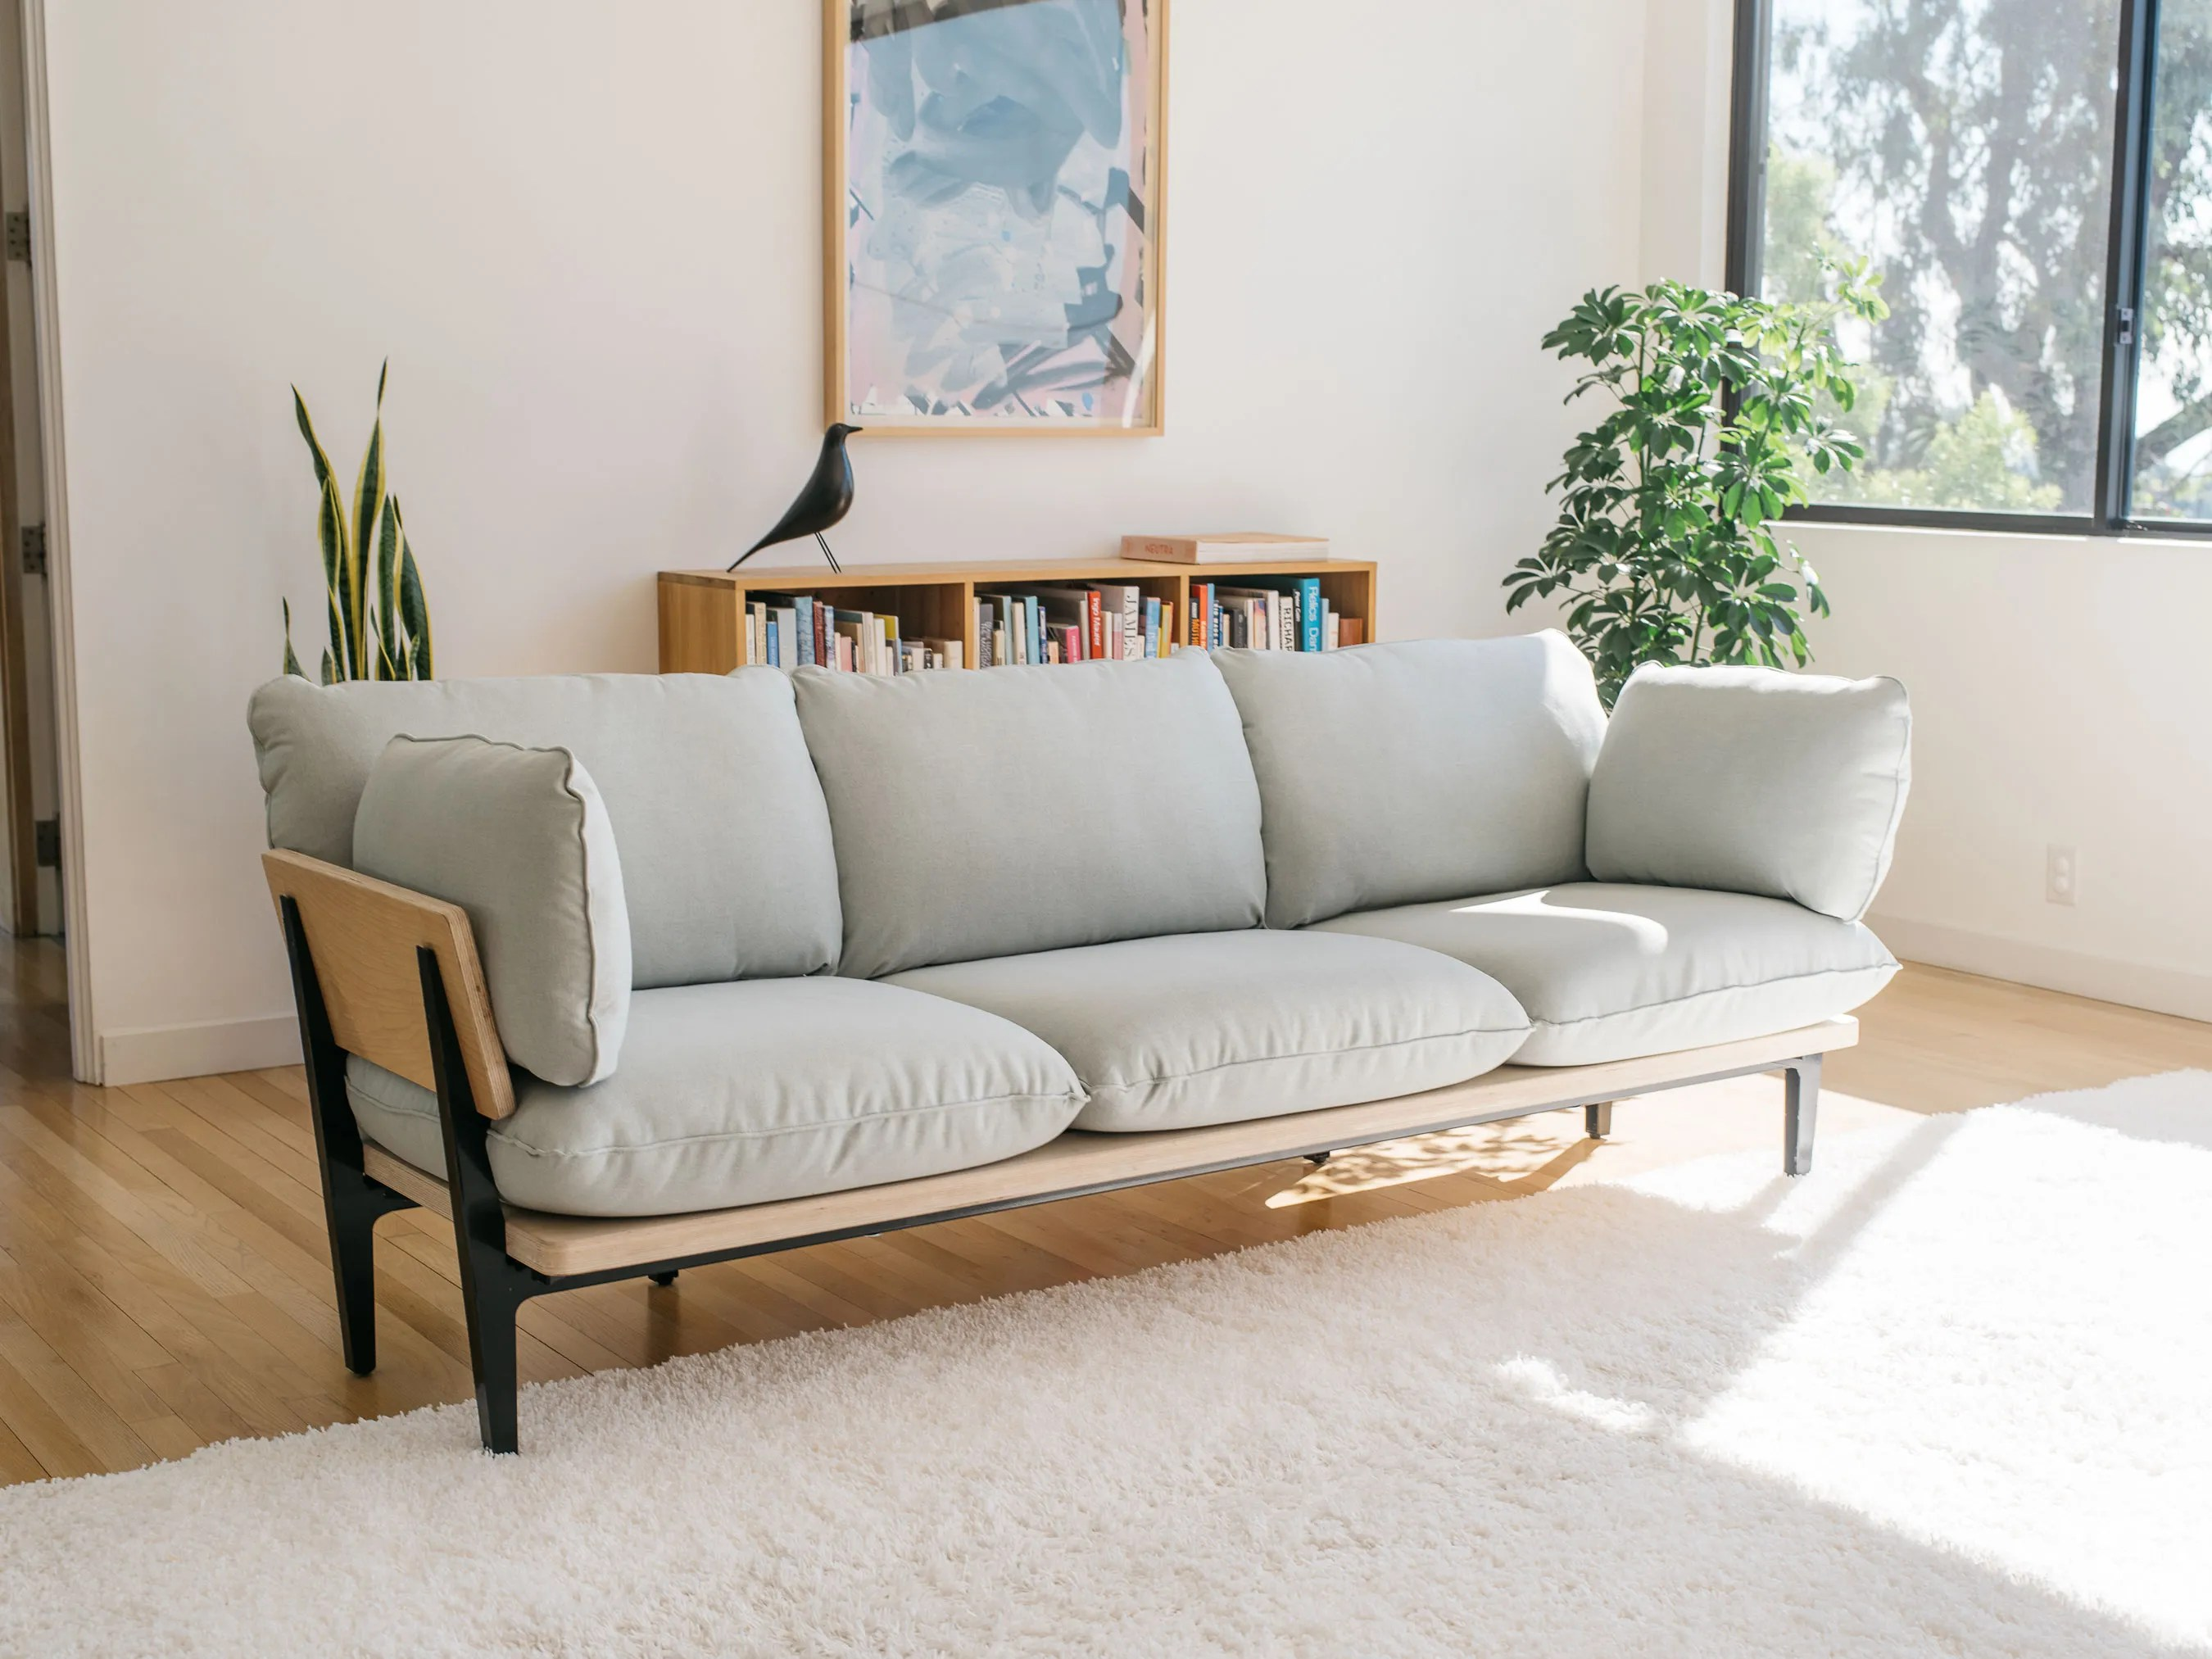 The New Floyd Sofa Is So Fancy-Looking (and Ships In 1 Day